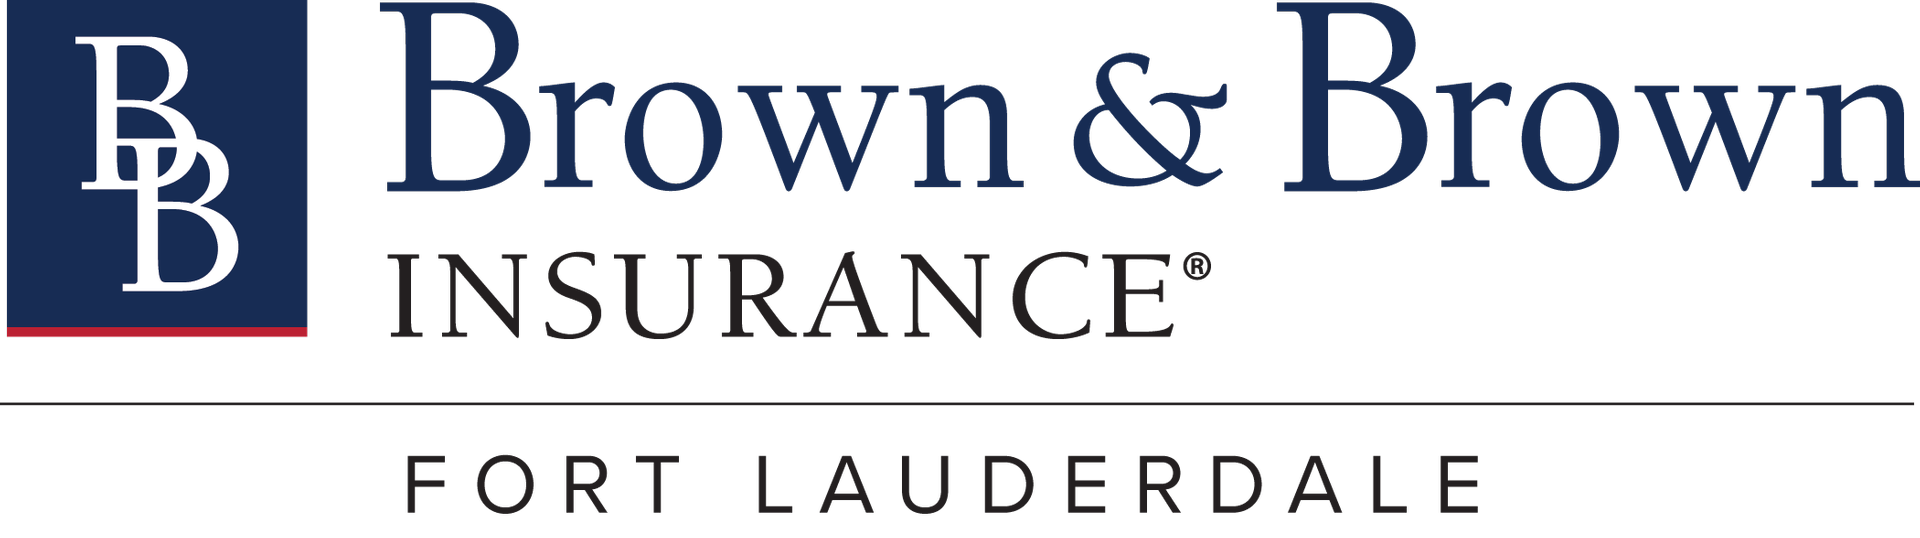 SBrown & Brown Insurance